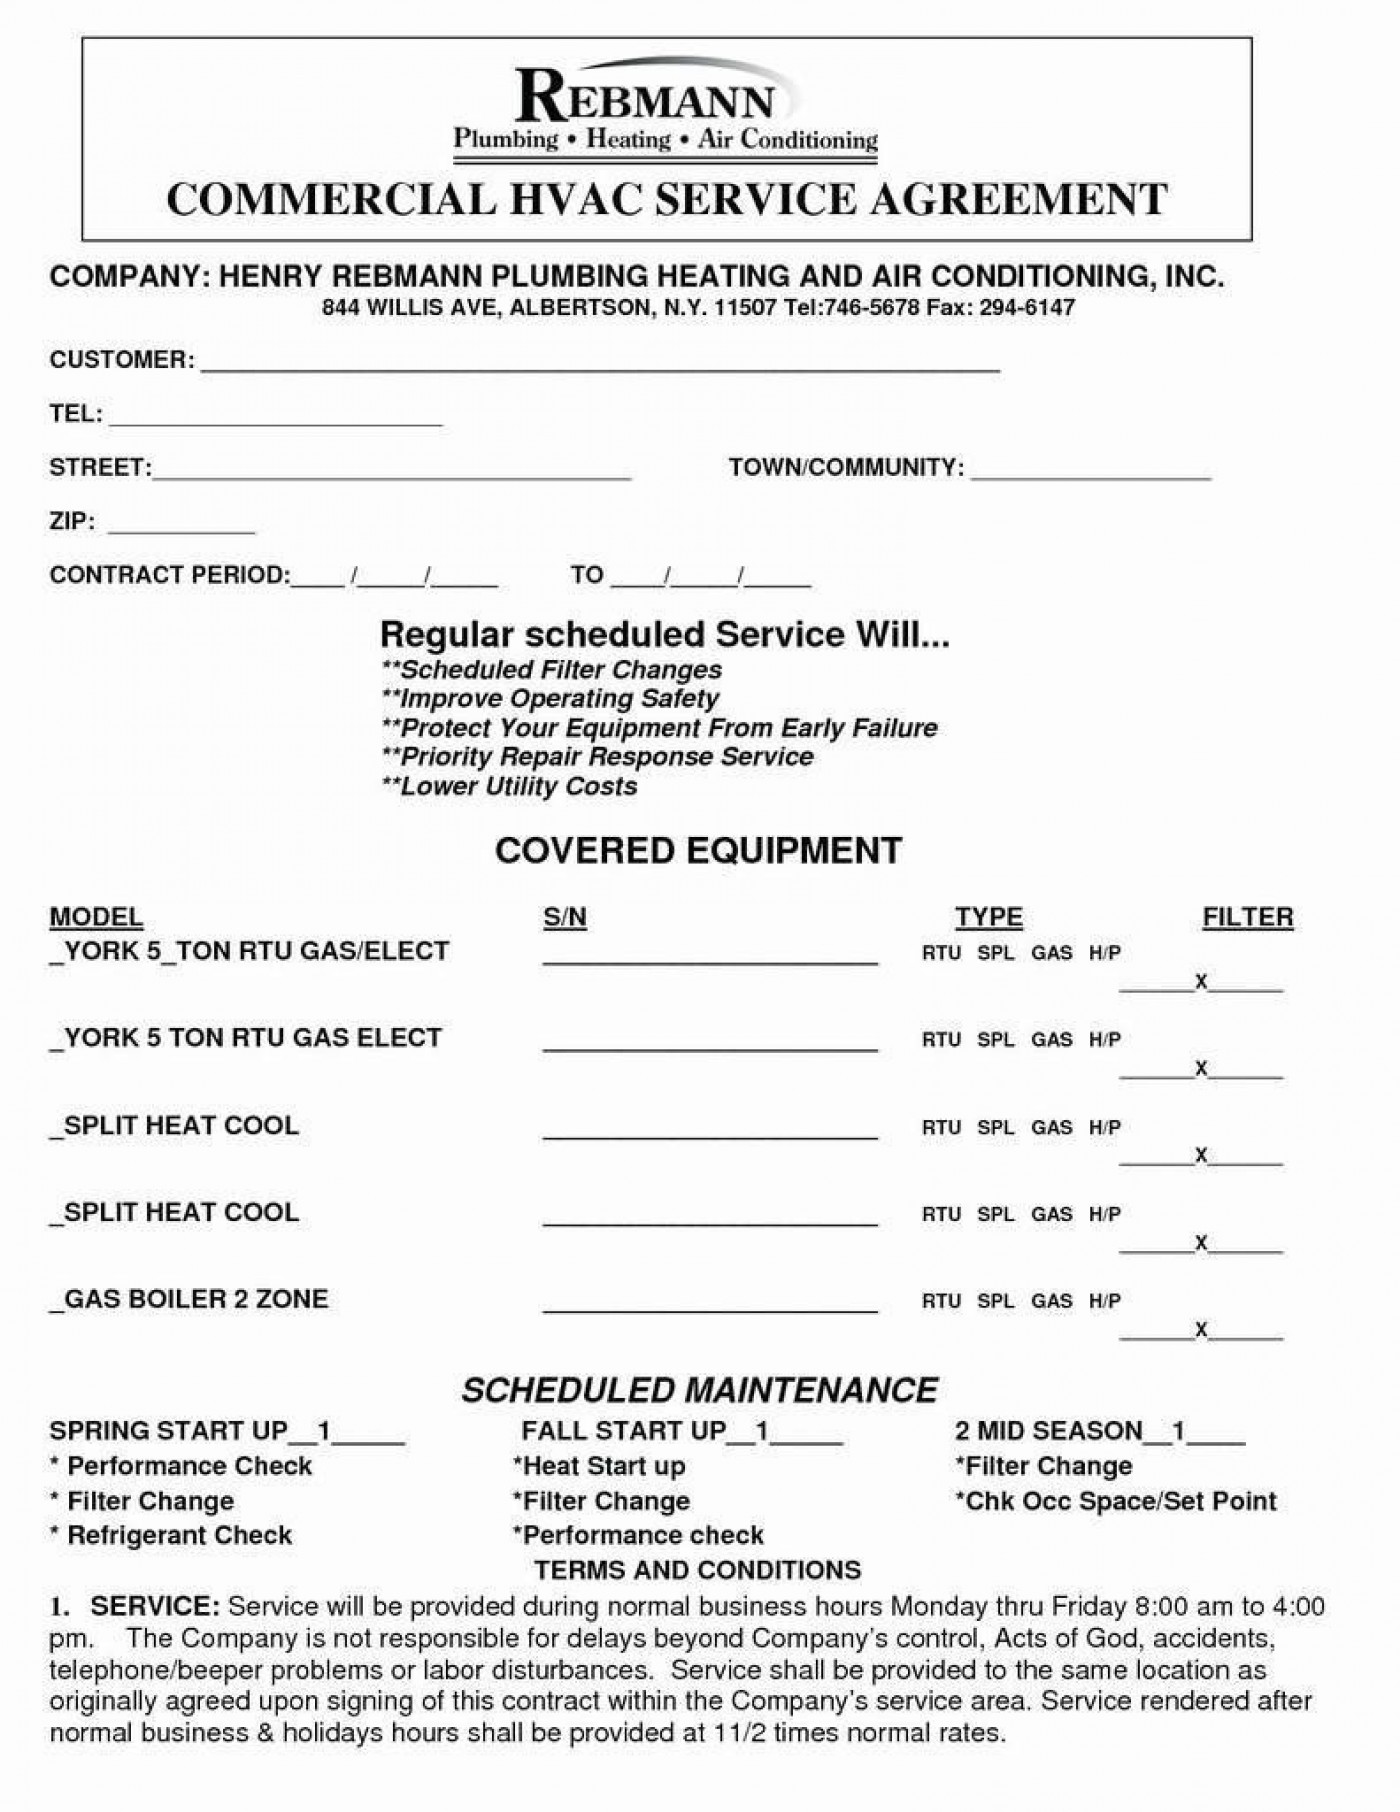 007 Dreaded Commercial Hvac Service Agreement Template Picture  Maintenance Contract1400